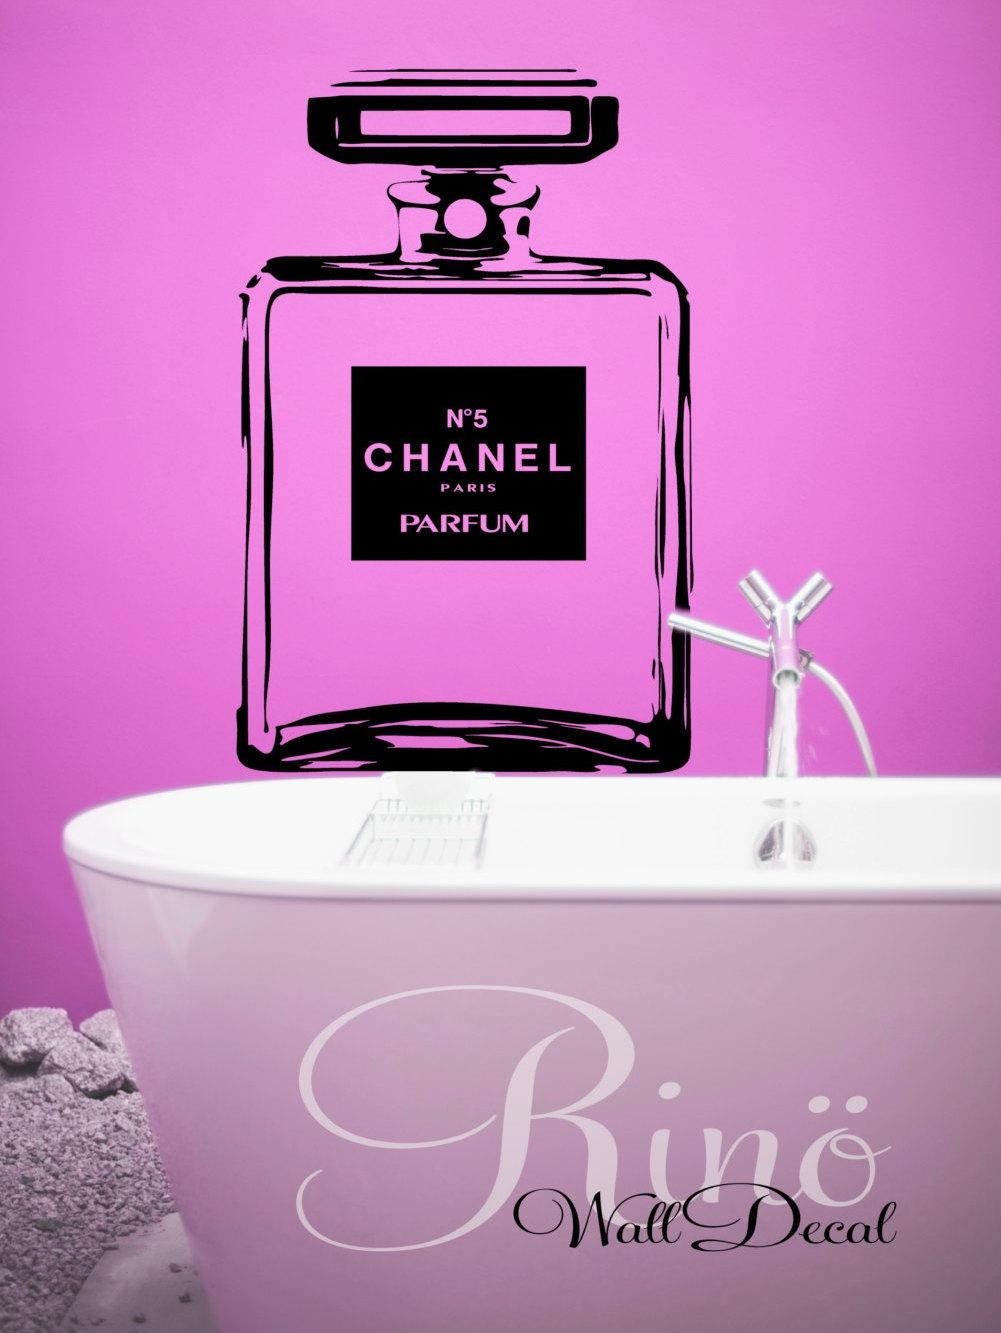 Chanel No 5 Stencil Large Bottle Wall Art Decal Cc Coco Chanel Within Coco Chanel Wall Stickers (Image 5 of 20)